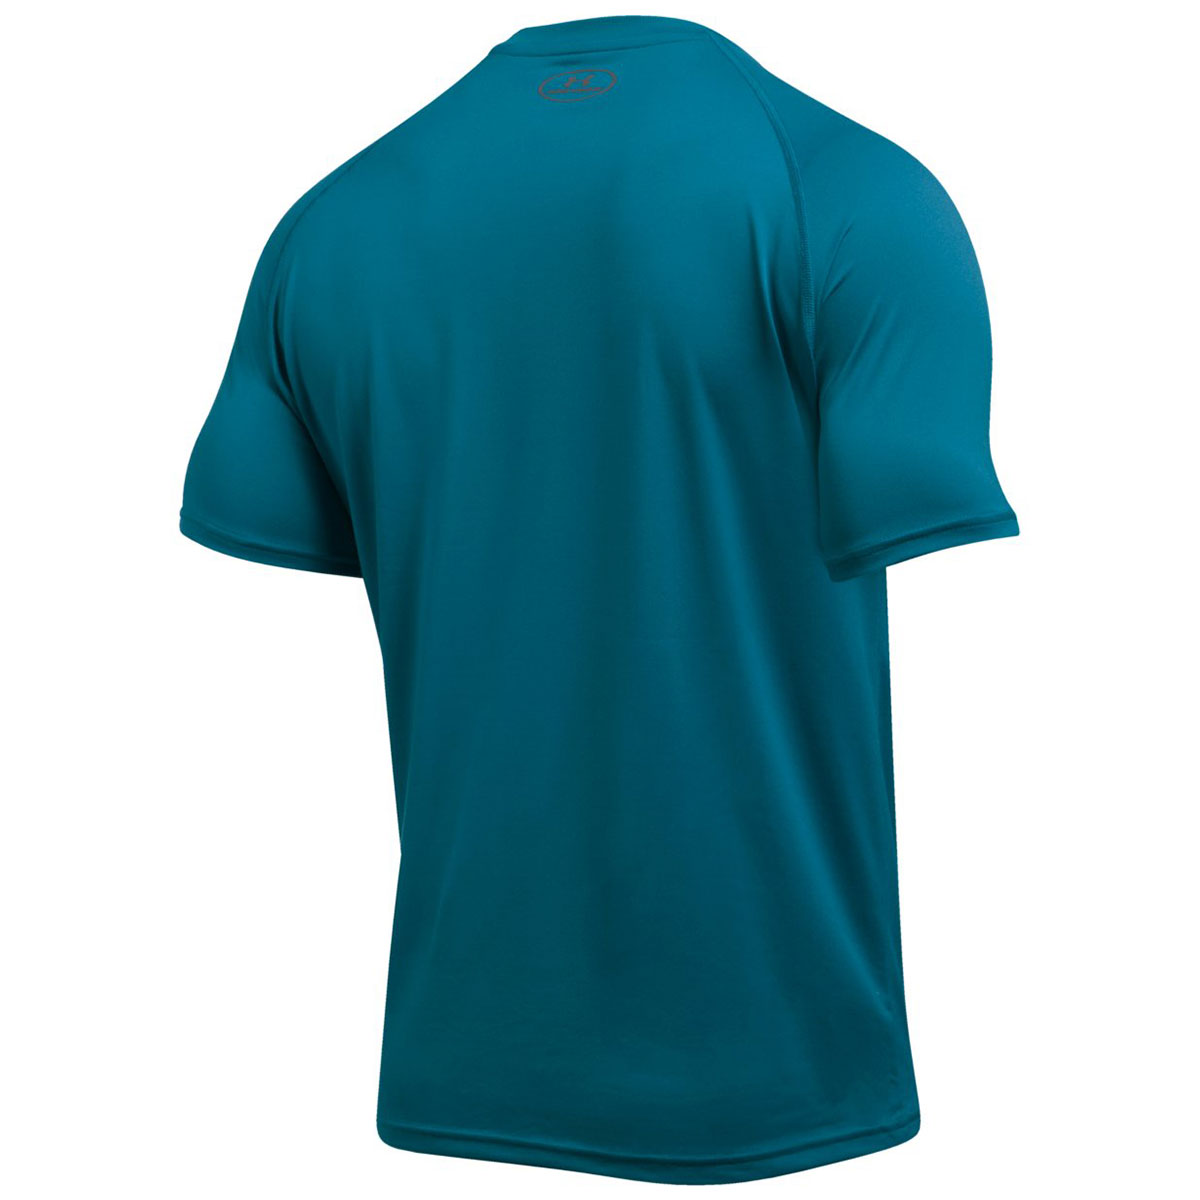 Under-Armour-Mens-UA-Tech-SS-T-Shirt-HeatGear-Training-31-OFF-RRP thumbnail 10